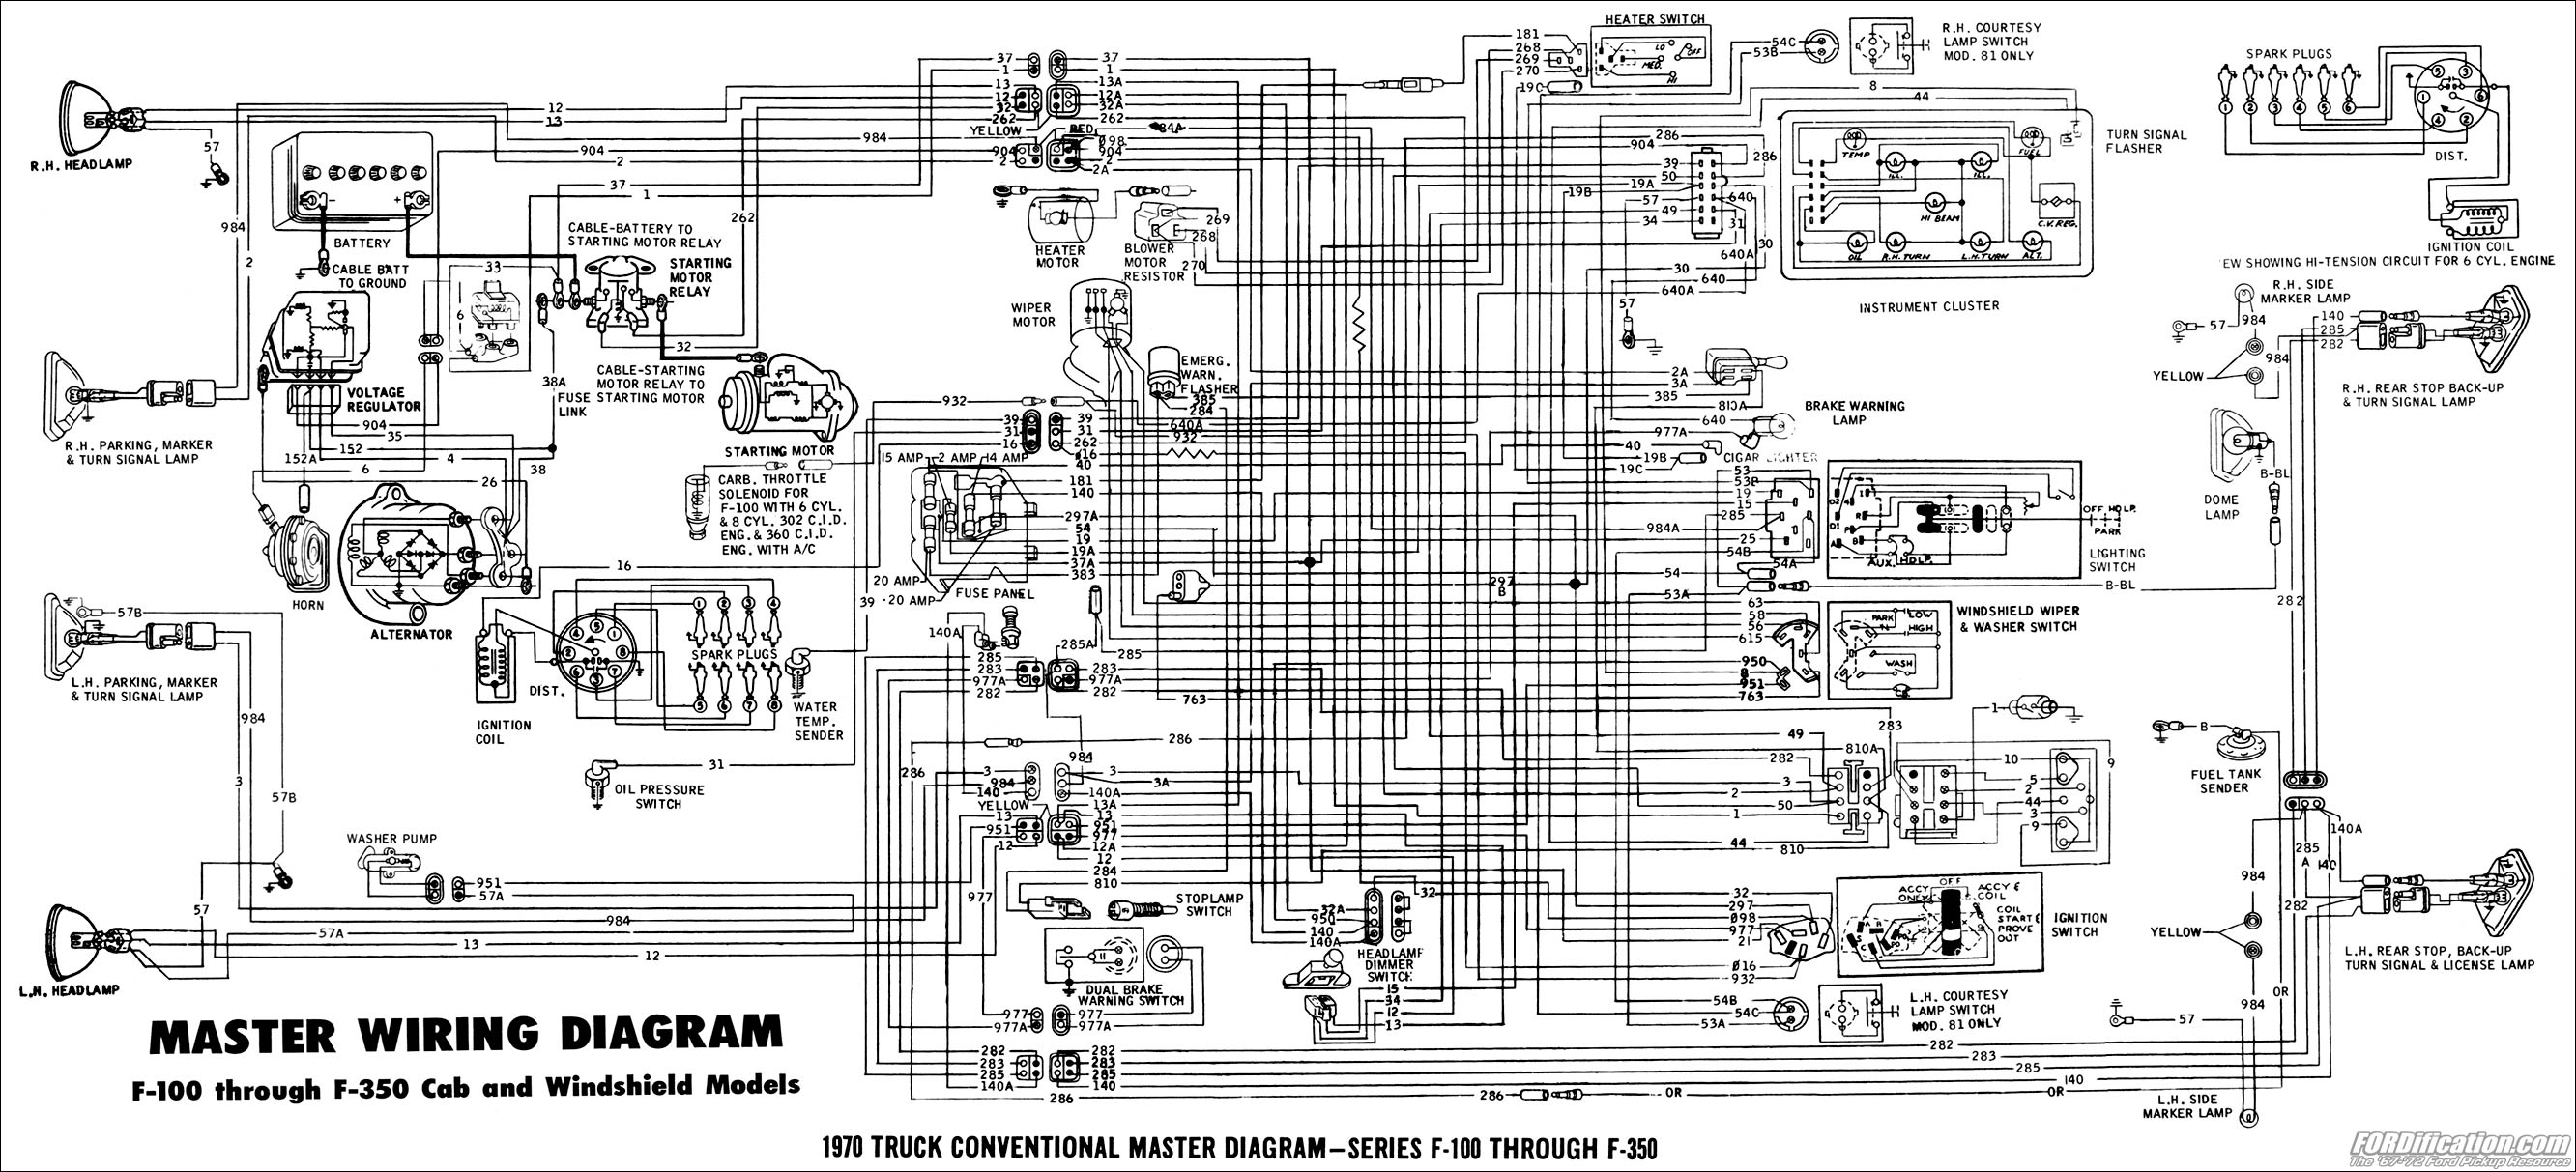 2006 Ford F 250 Wiring Diagram Customer Access Wiring Diagram Reguler Reguler Consorziofiuggiturismo It